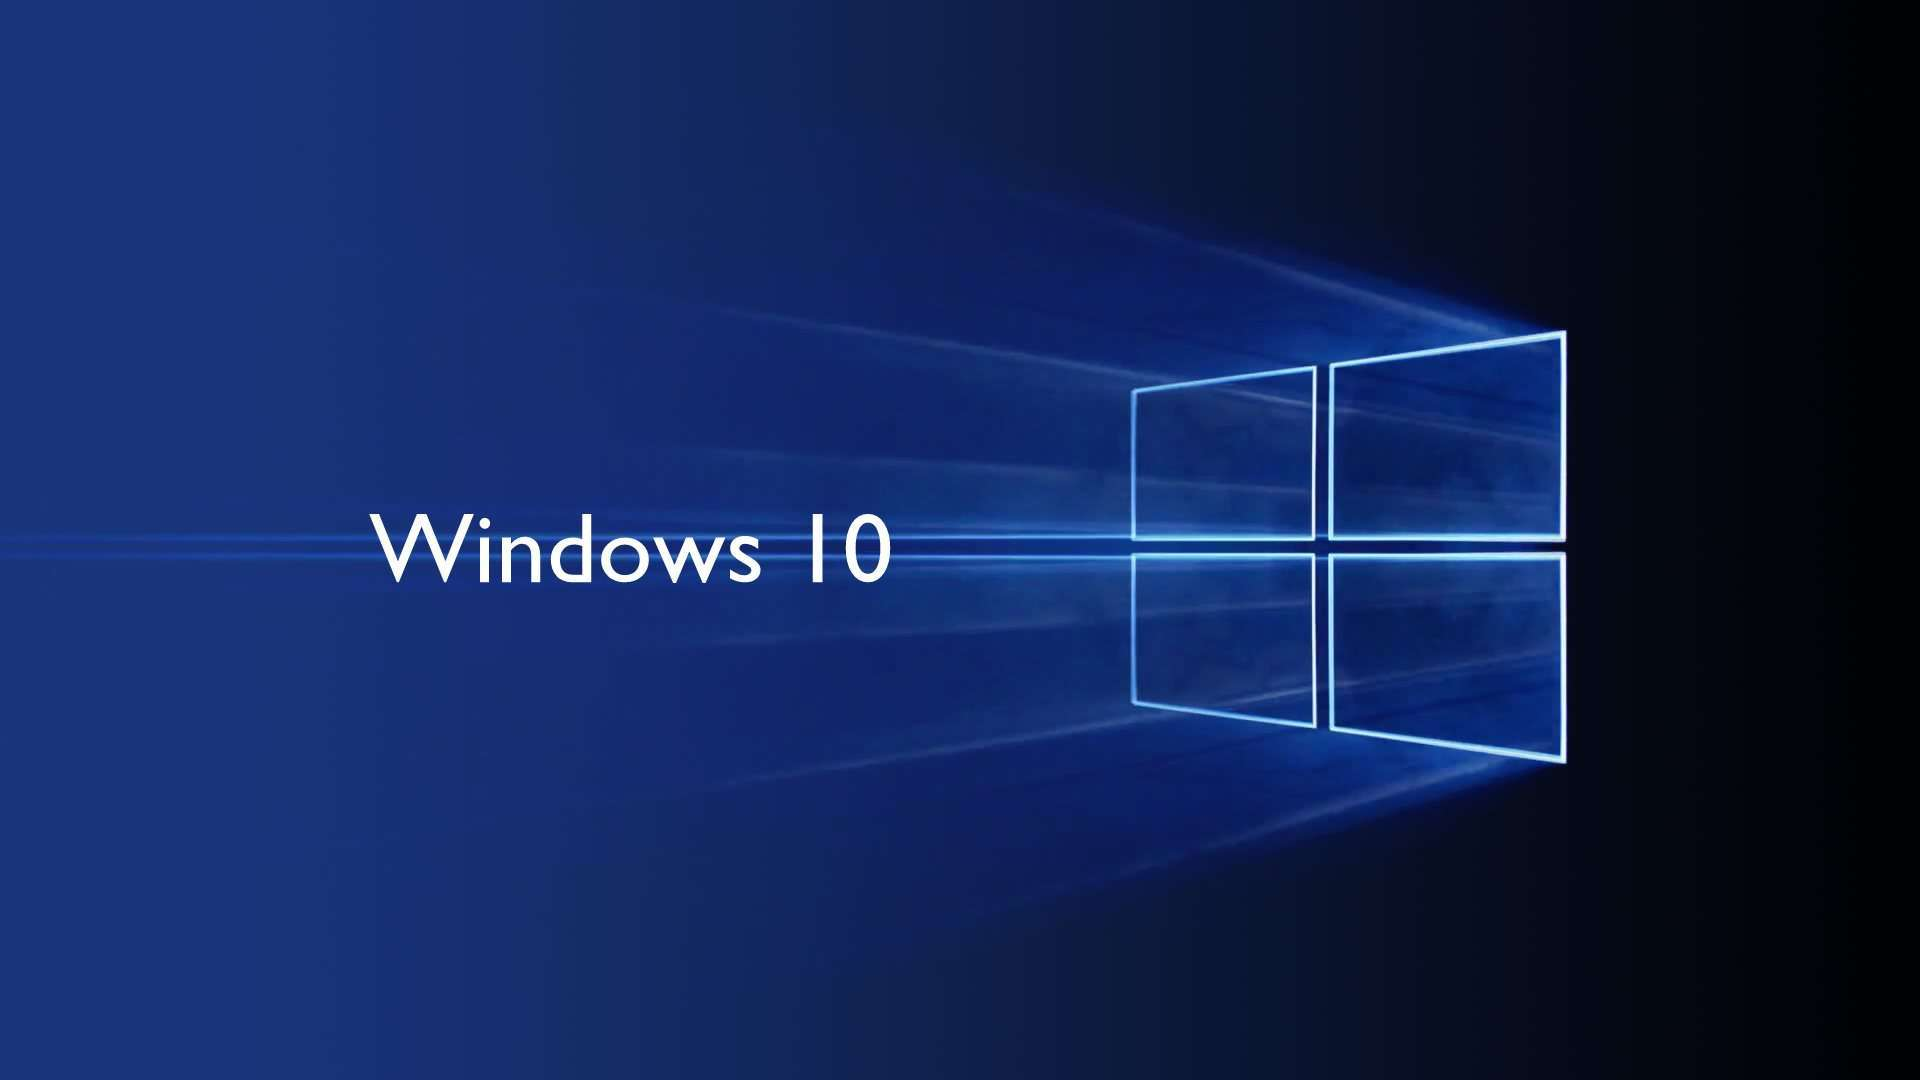 Windows 10 HD Wallpapers - Top Free Windows 10 HD Backgrounds